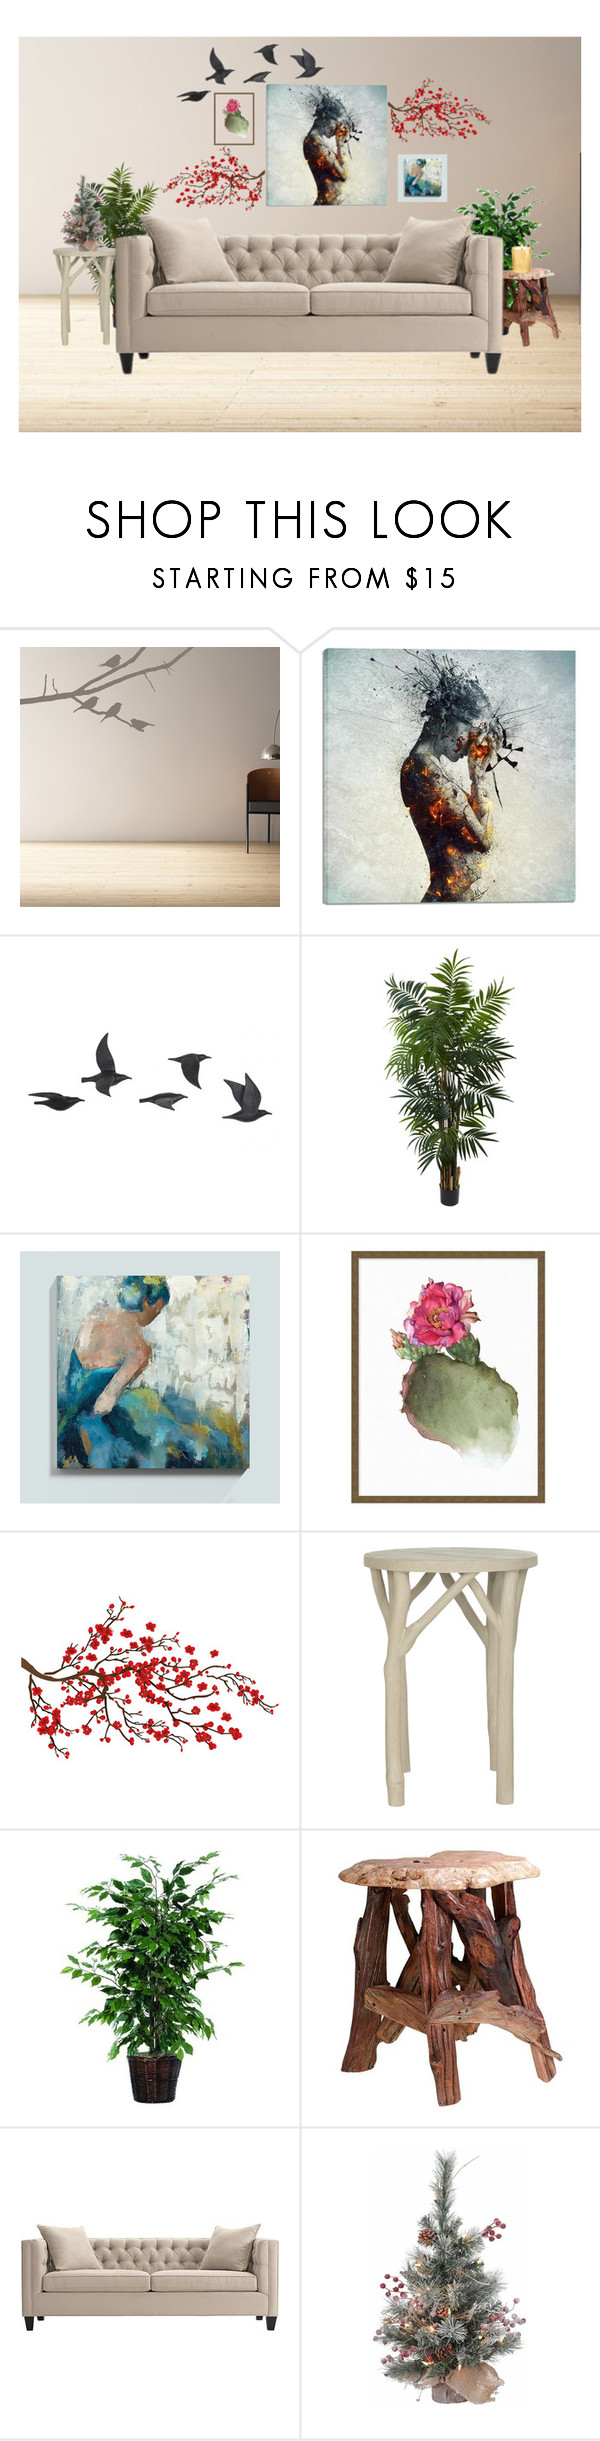 """""""Untitled #16"""" by onikaa ❤ liked on Polyvore featuring interior, interiors, interior design, home, home decor, interior decorating, Cortesi Home, Jayson Home, Nearly Natural and Ballard Designs"""